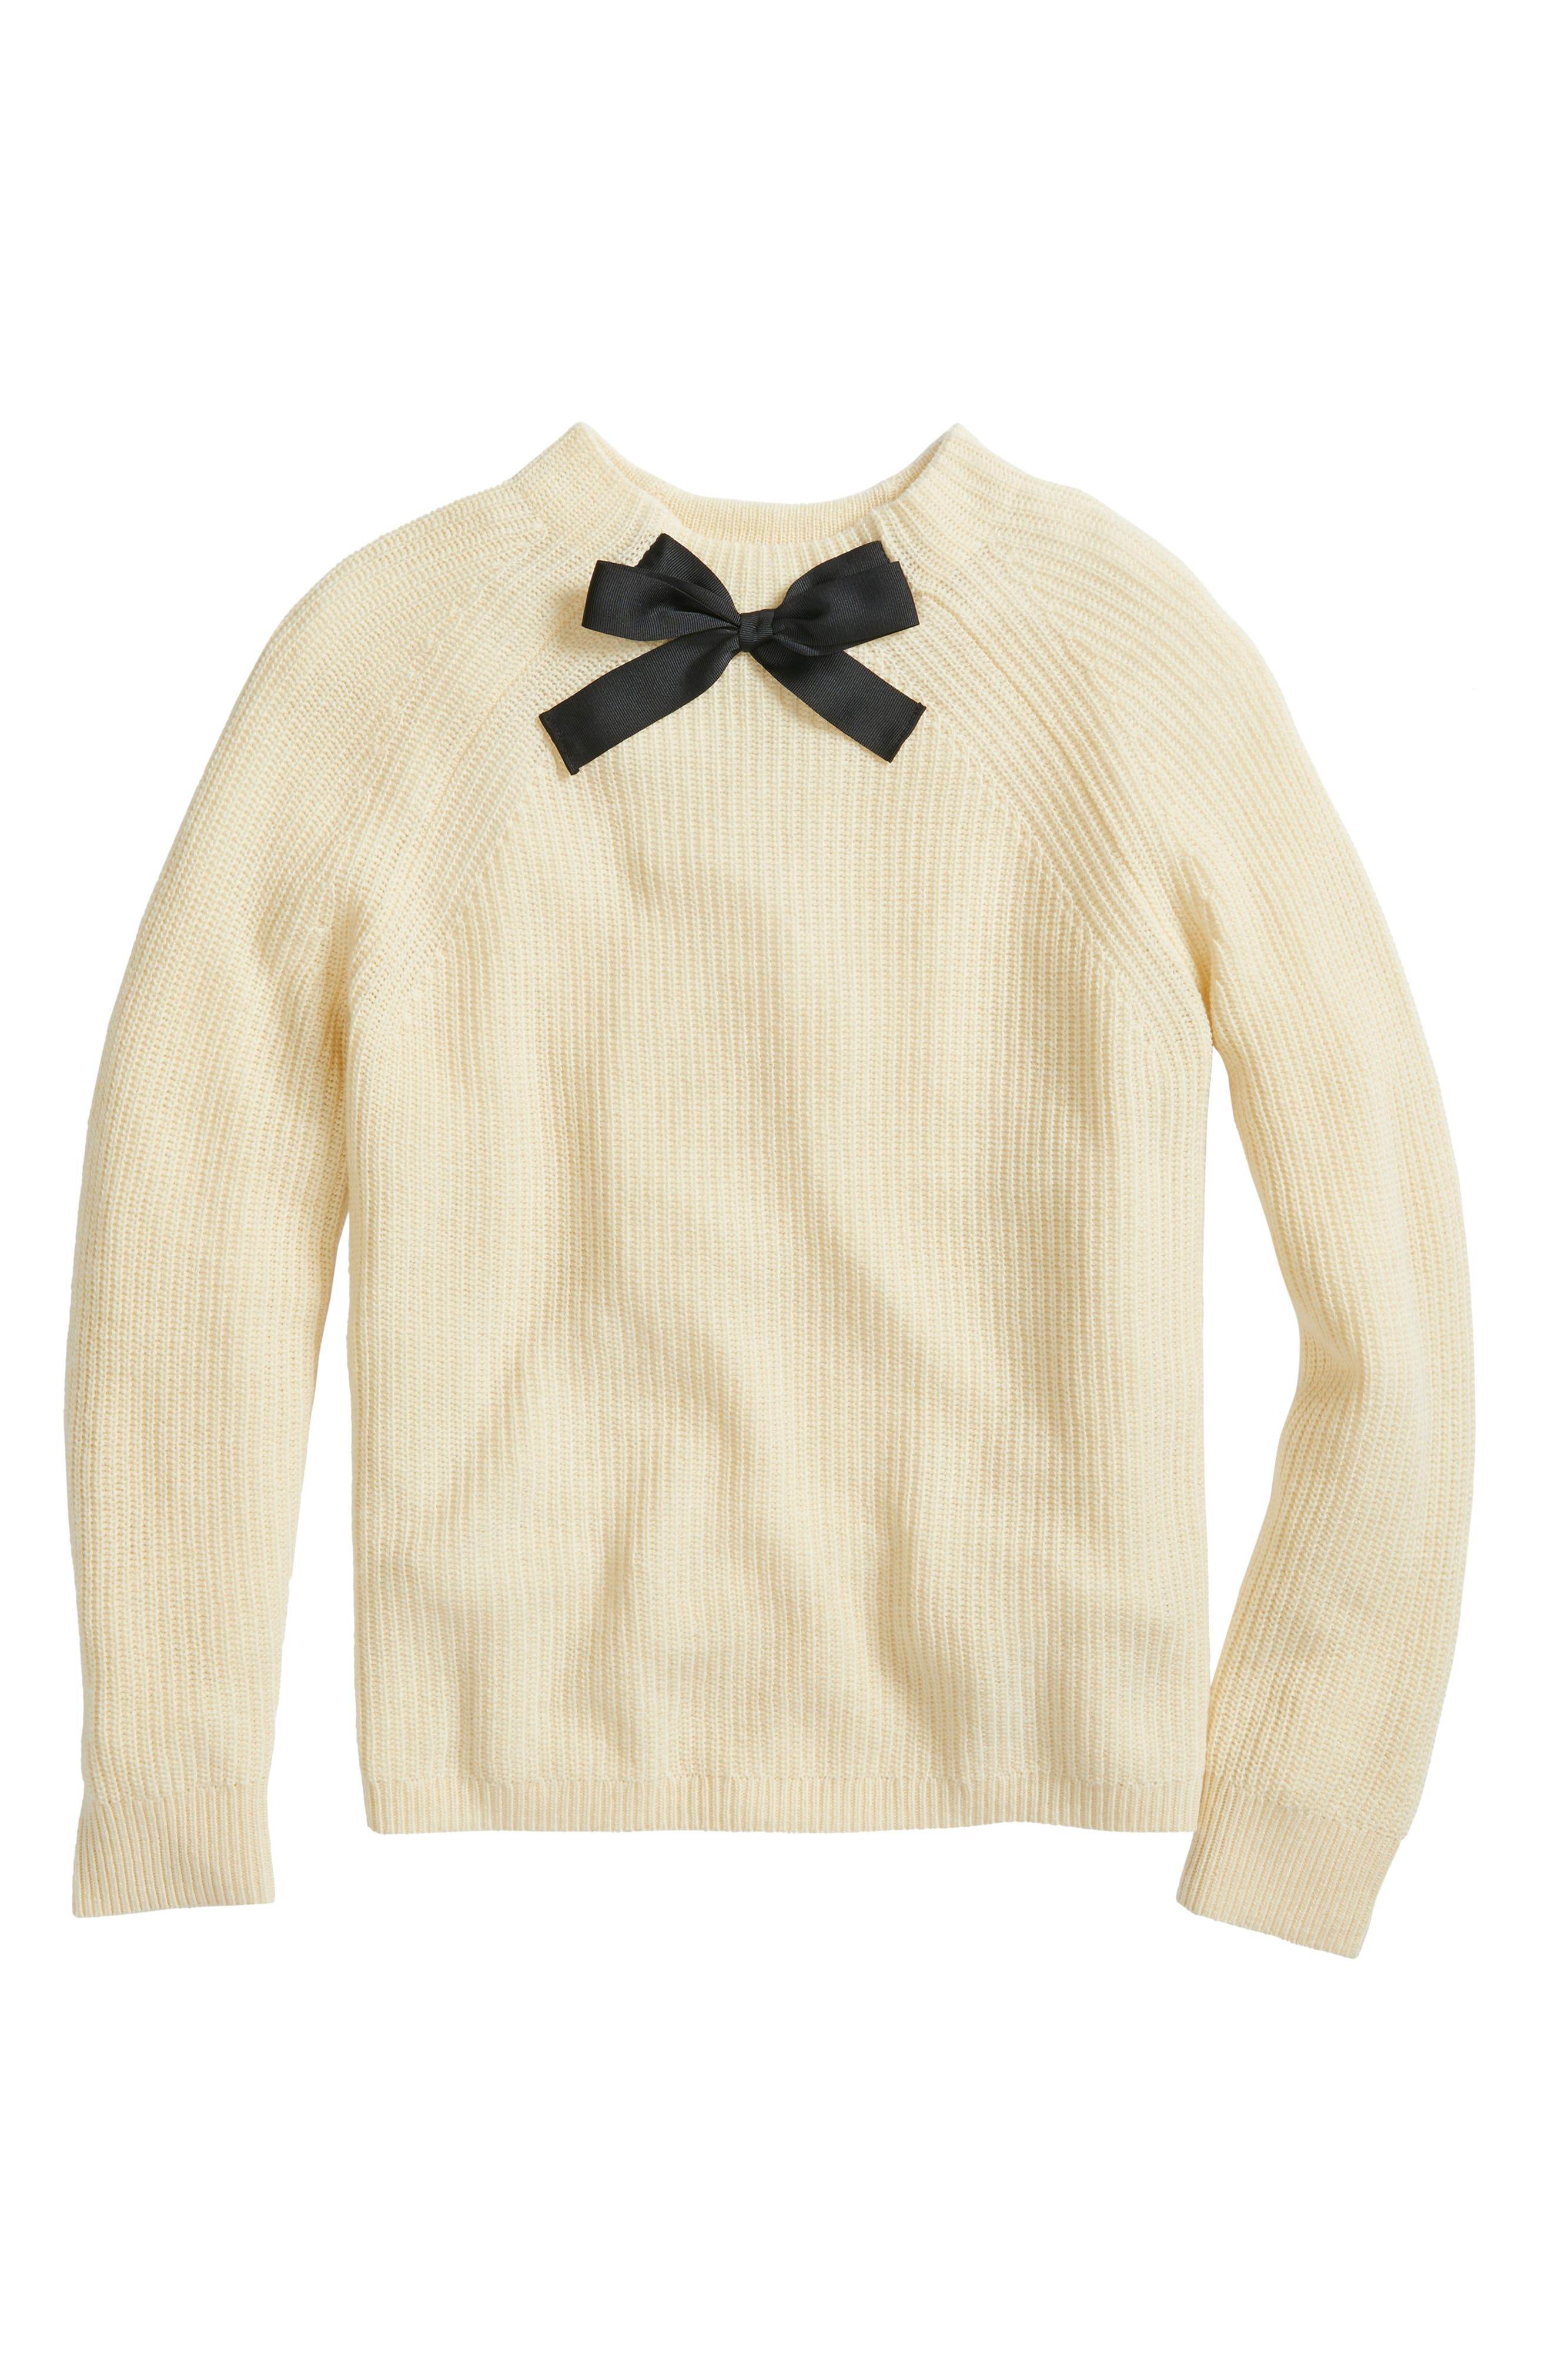 Alternate Image 1 Selected - J.Crew Gayle Tie Neck Sweater